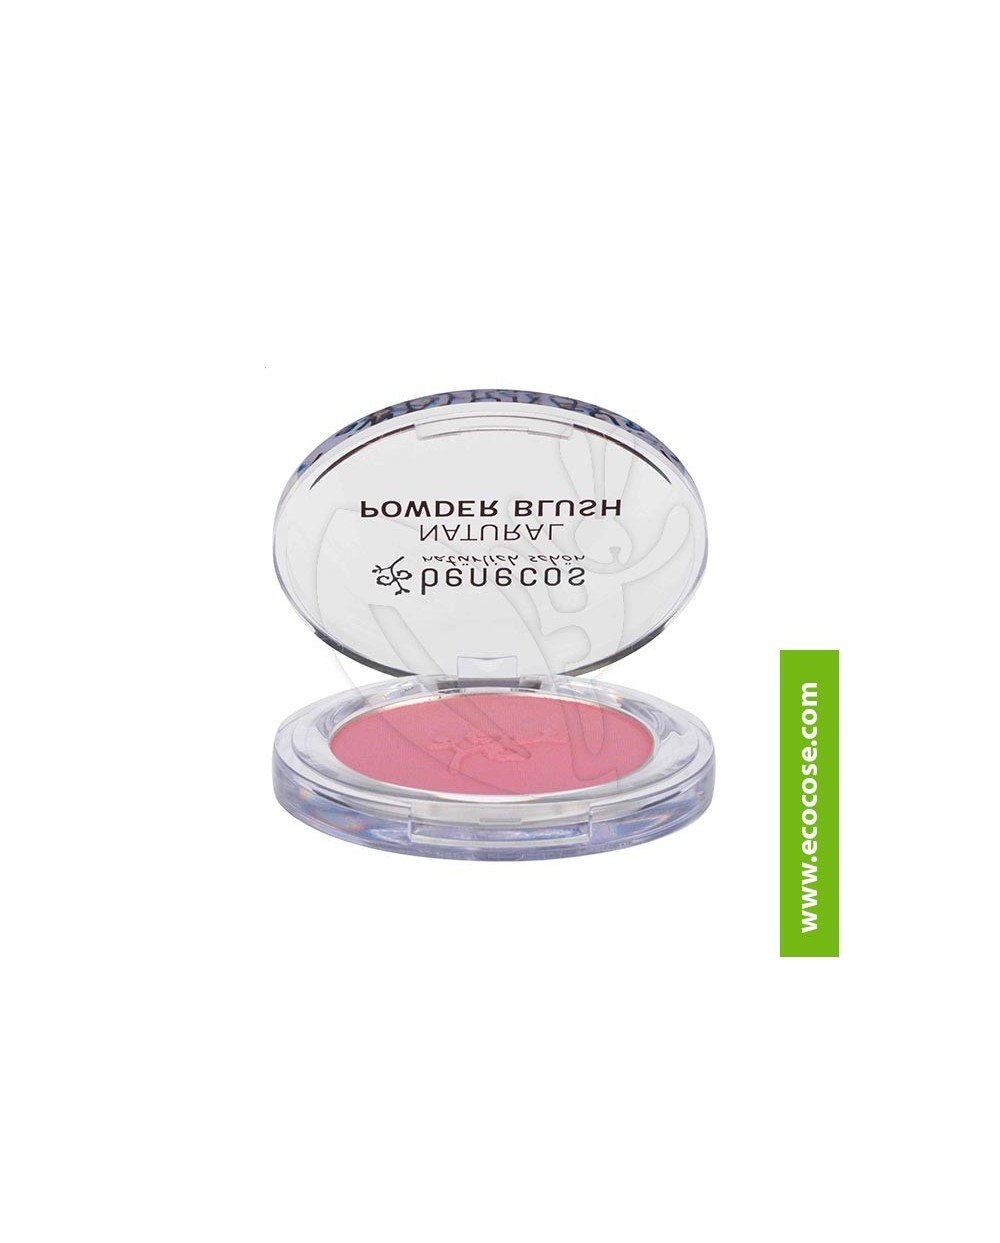 Benecos Fard Naturale Compatto - Mallow Rose